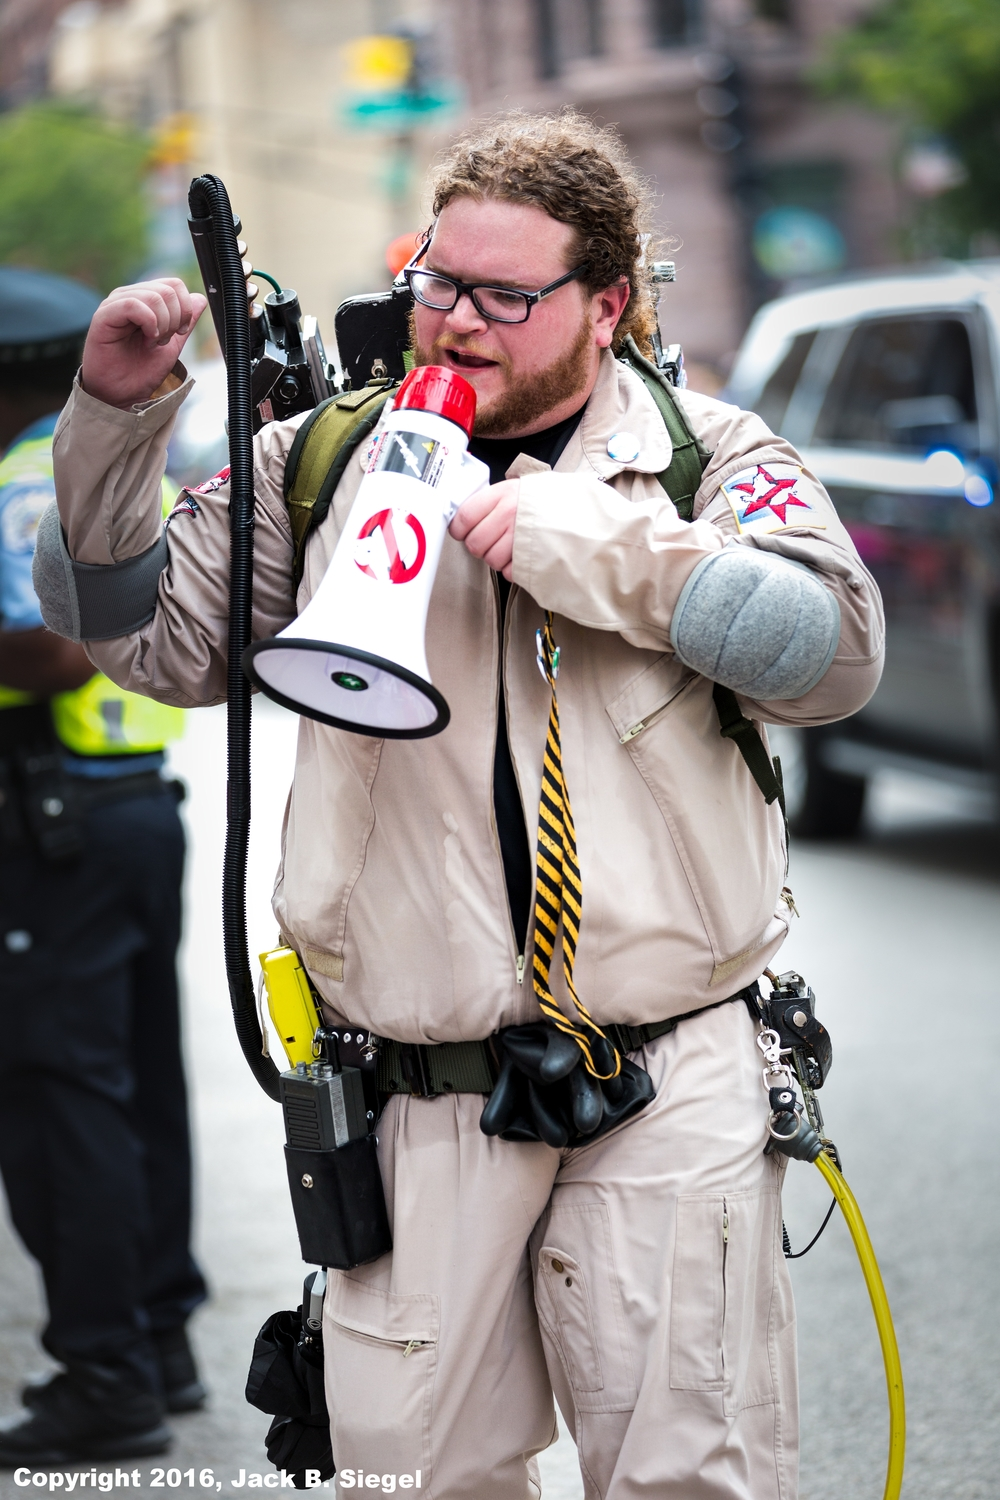 Ghostbusters: How Much Did the Producers Pay?